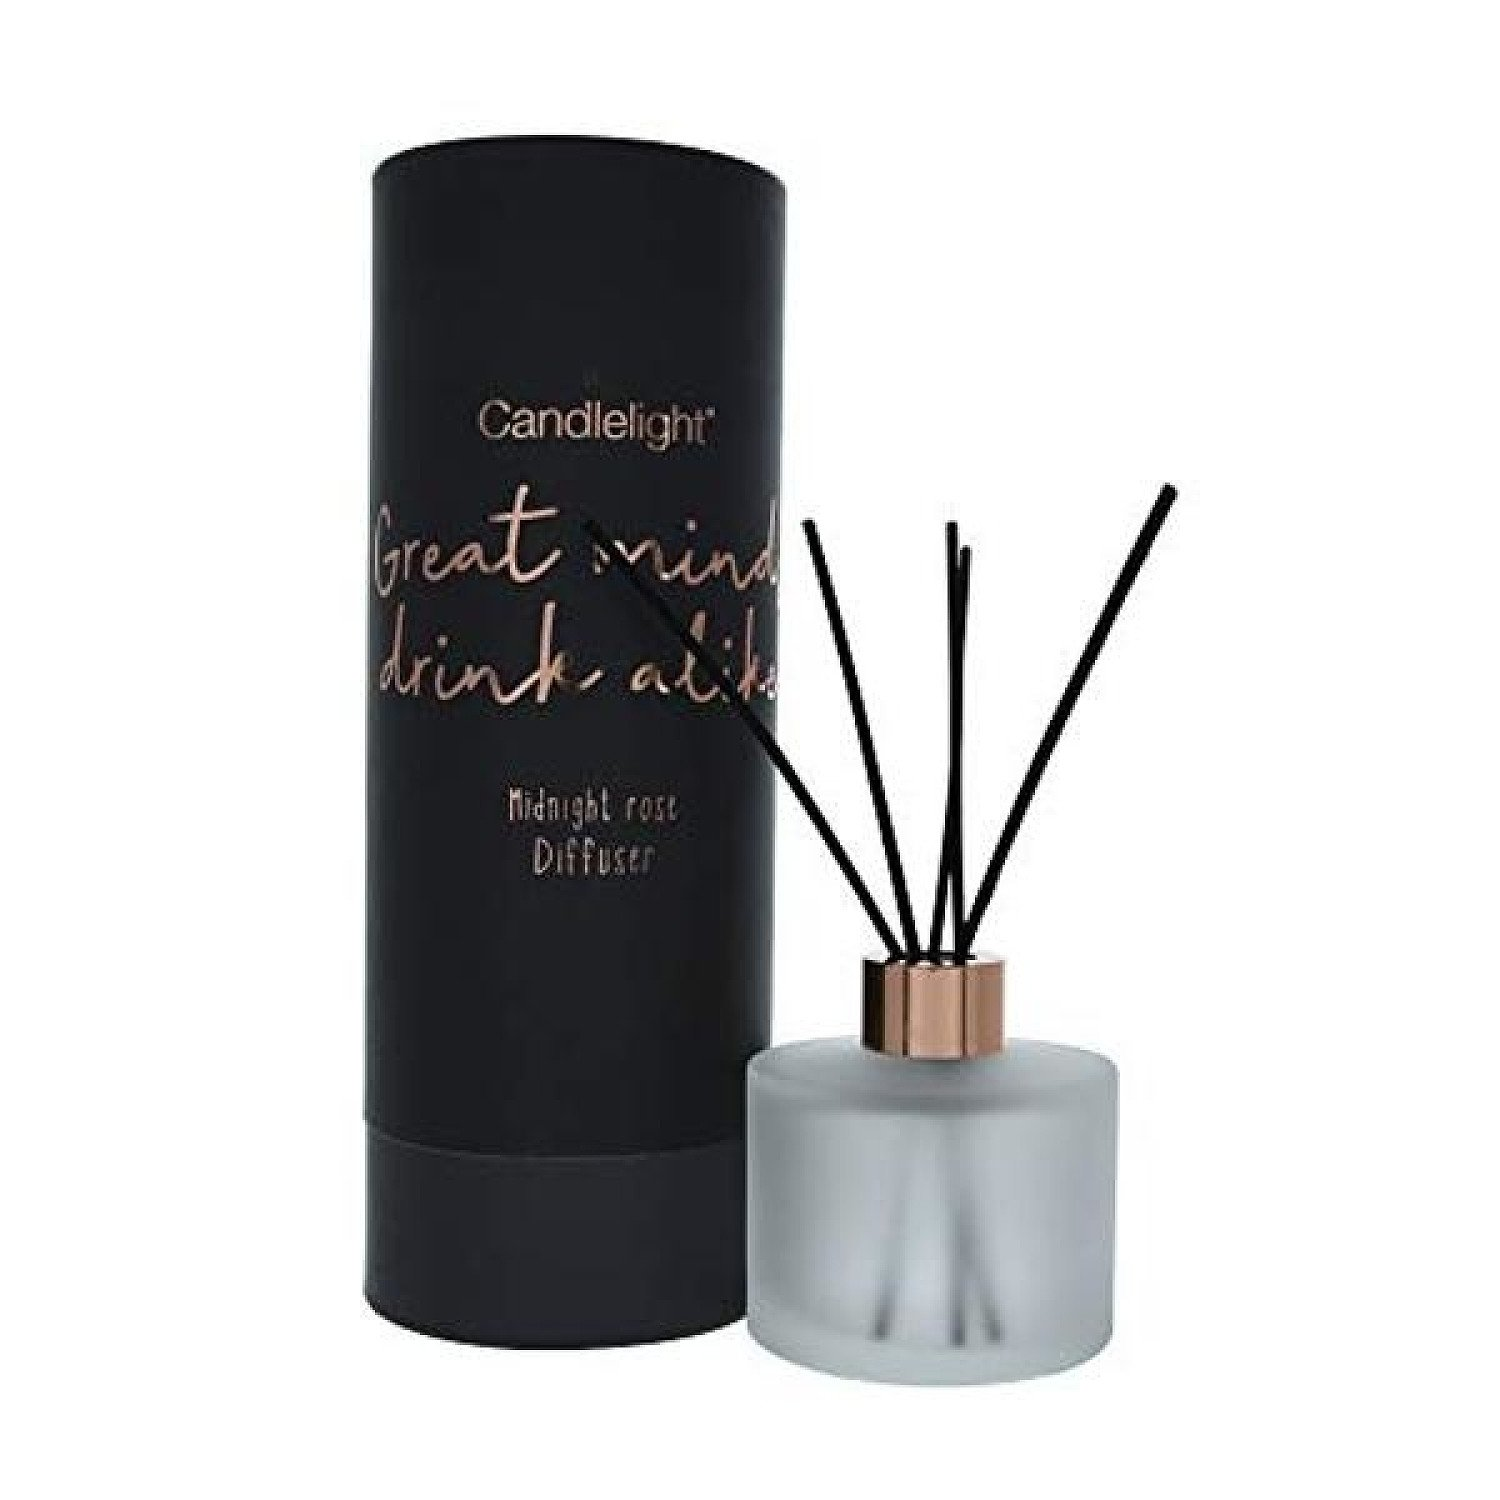 150Ml Reed Diffuser In Round Tube 'Great Minds Drink Alike' - Midnight Rose Scent